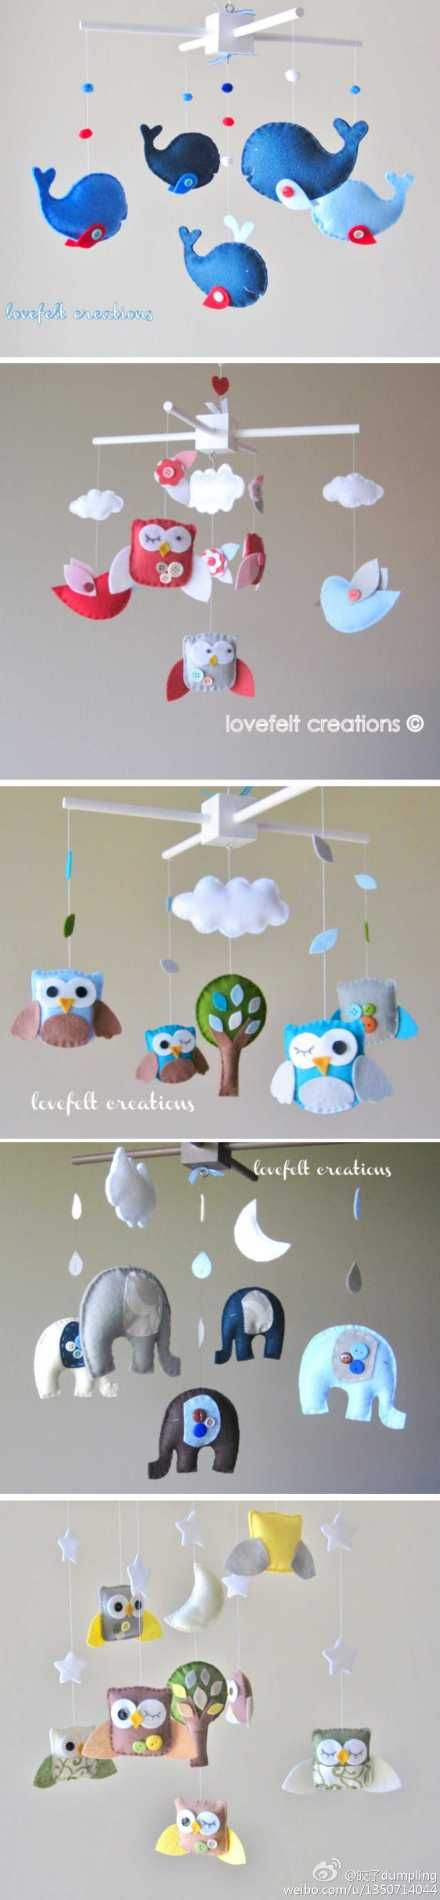 Everyone is apparently making these adorable animal felt mobiles. So many ideas…